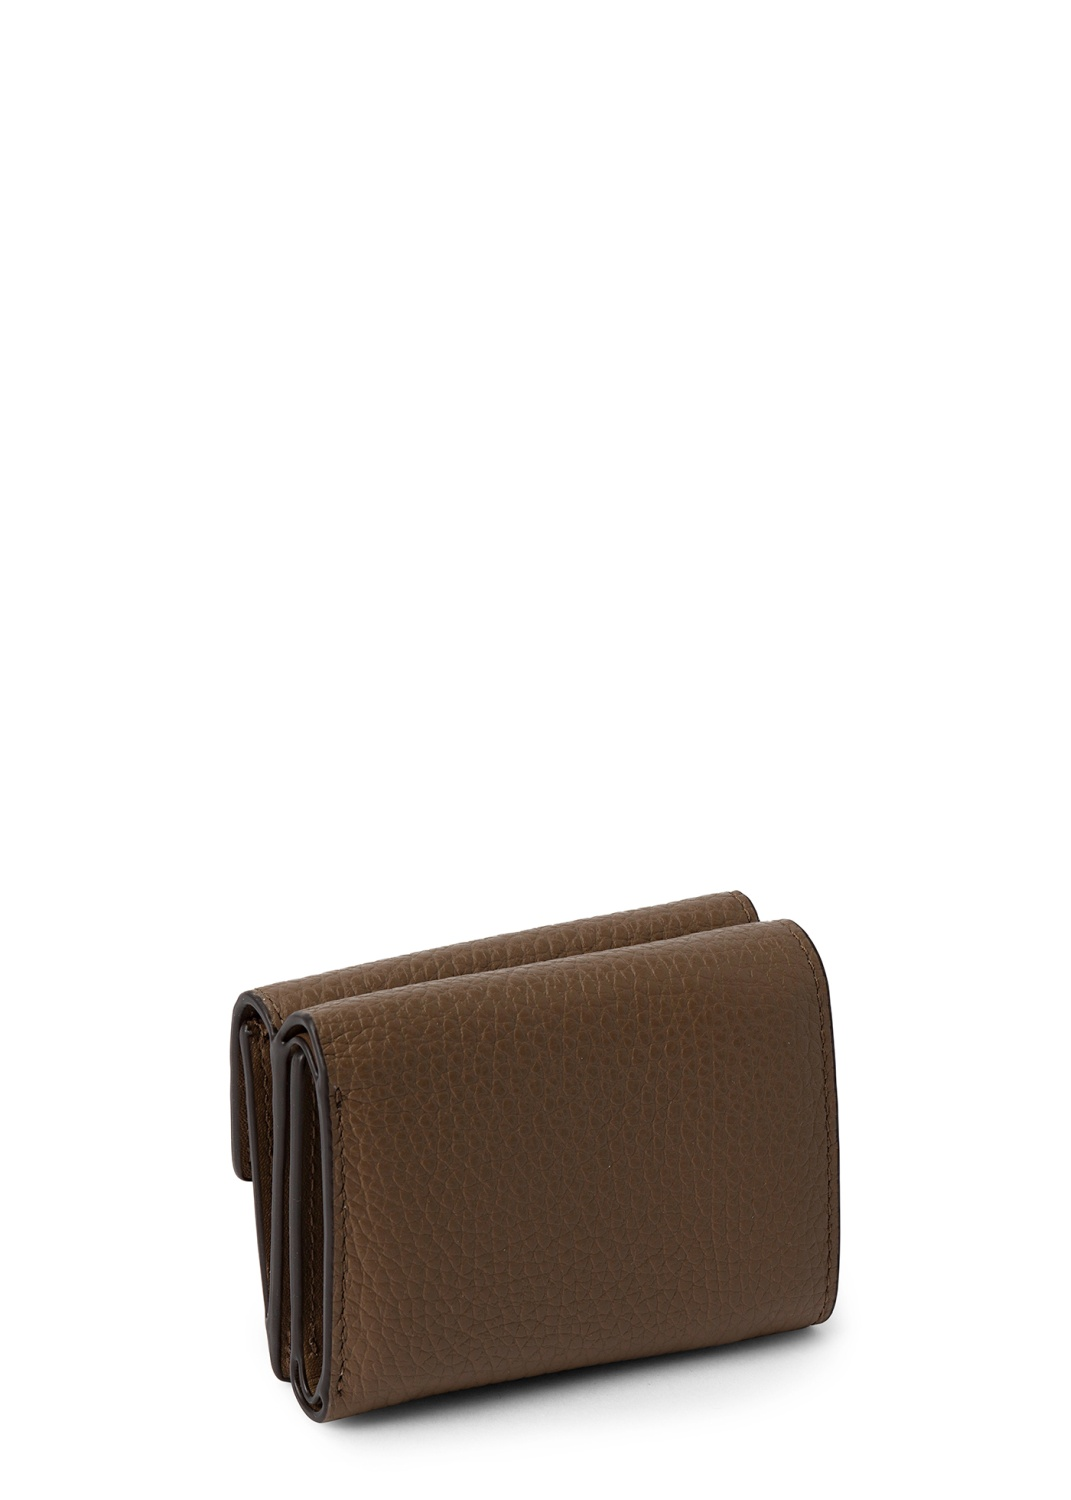 FURLA BABYLON S COMPACT WALLET TRIFOLD image number 1